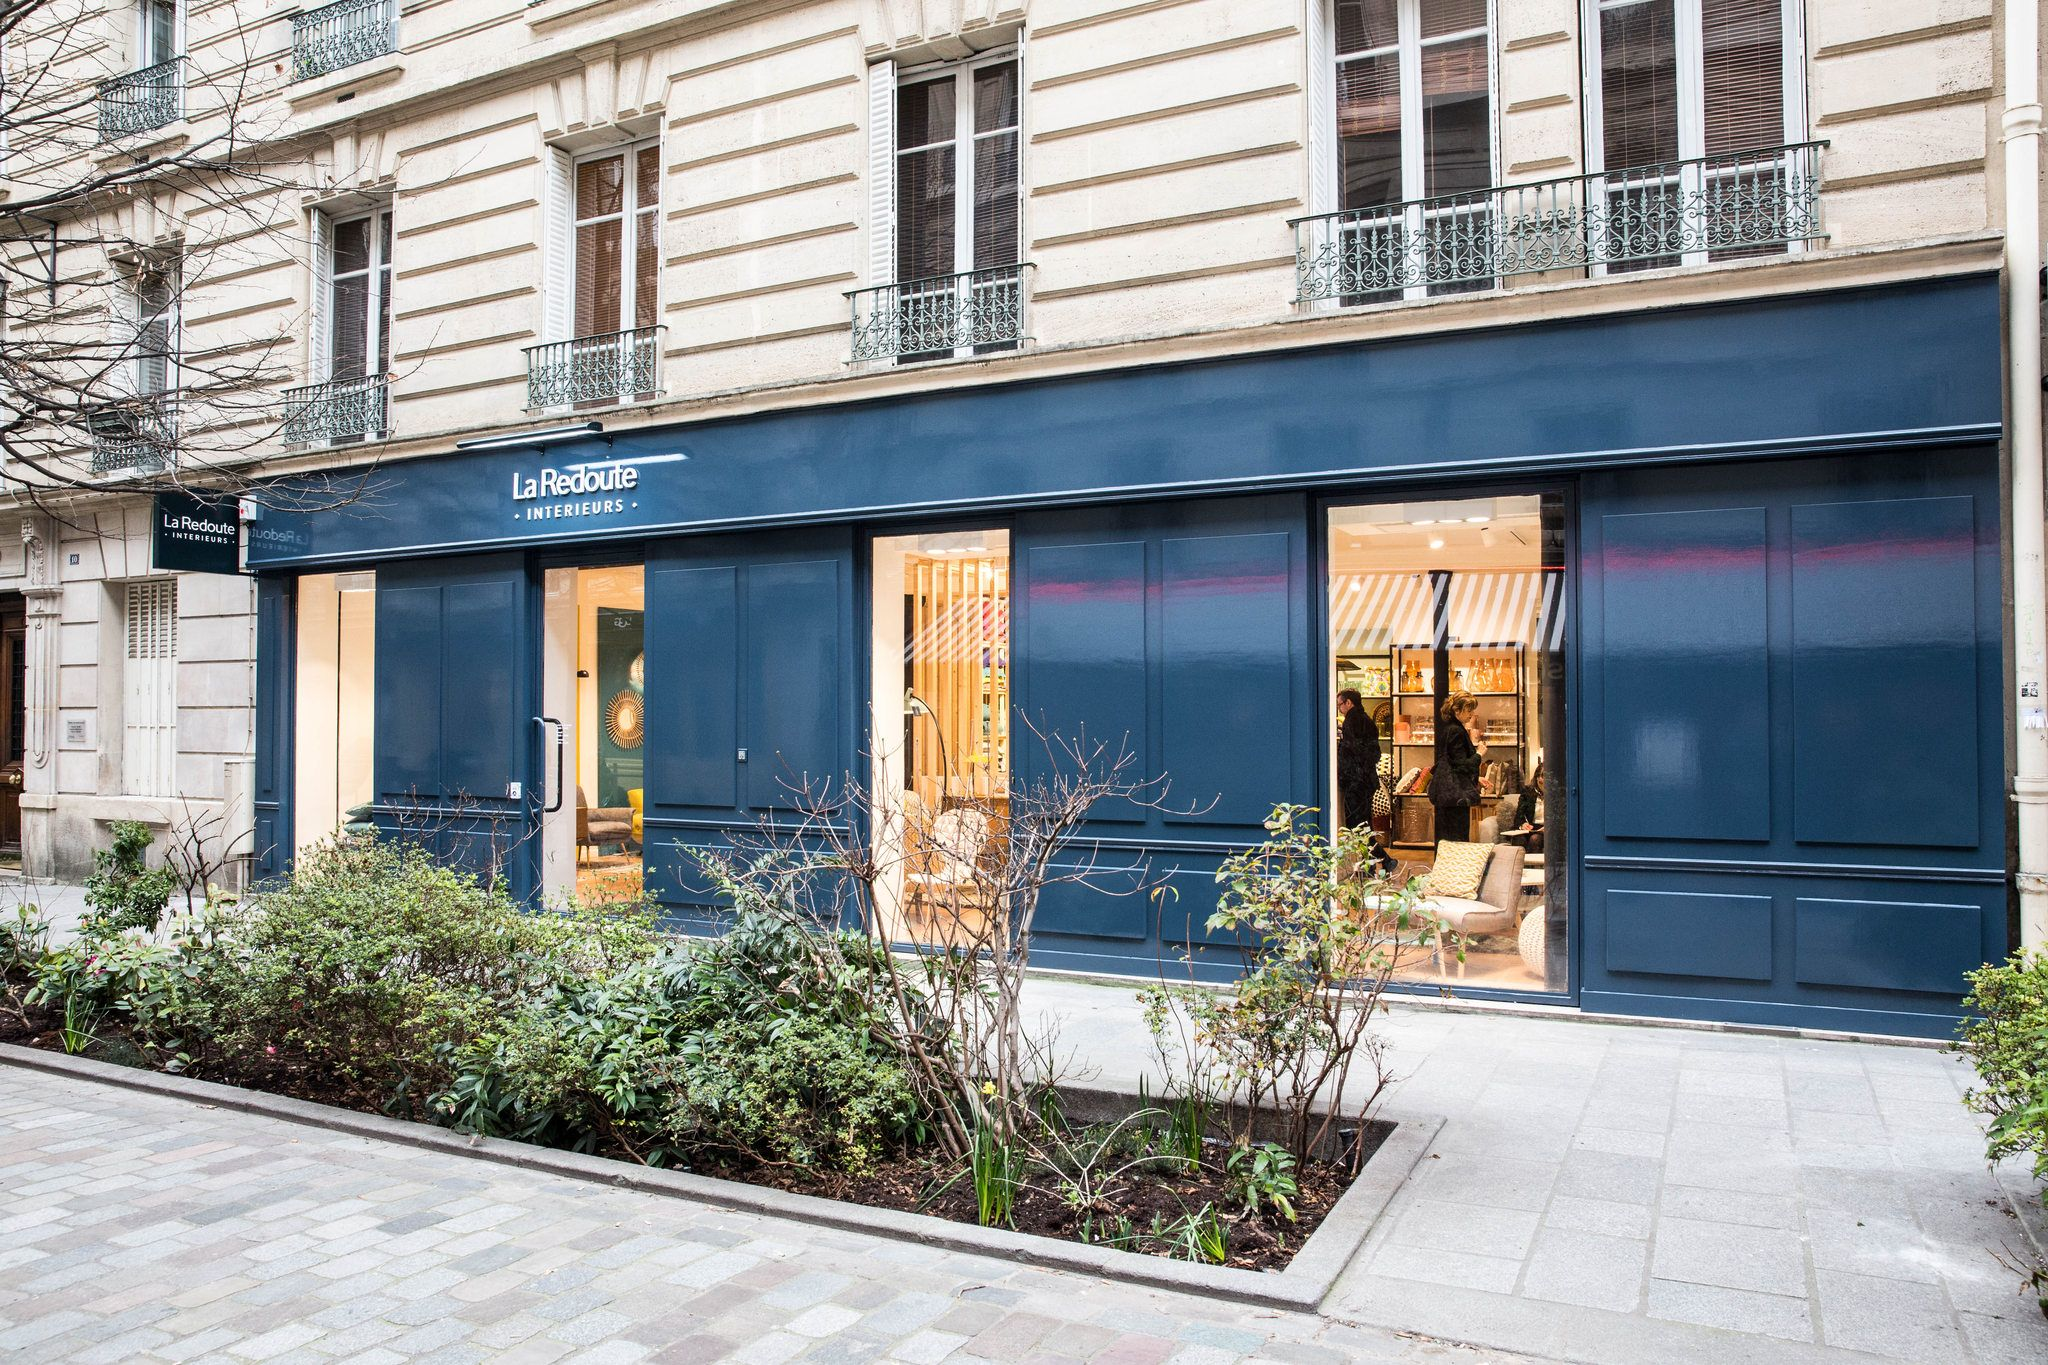 La Redoute Adresse Magasin Paris #15: La Redoute Opened Décor Boutique In Paris. #laredoute #paris  #thelocationgroup #shopopening